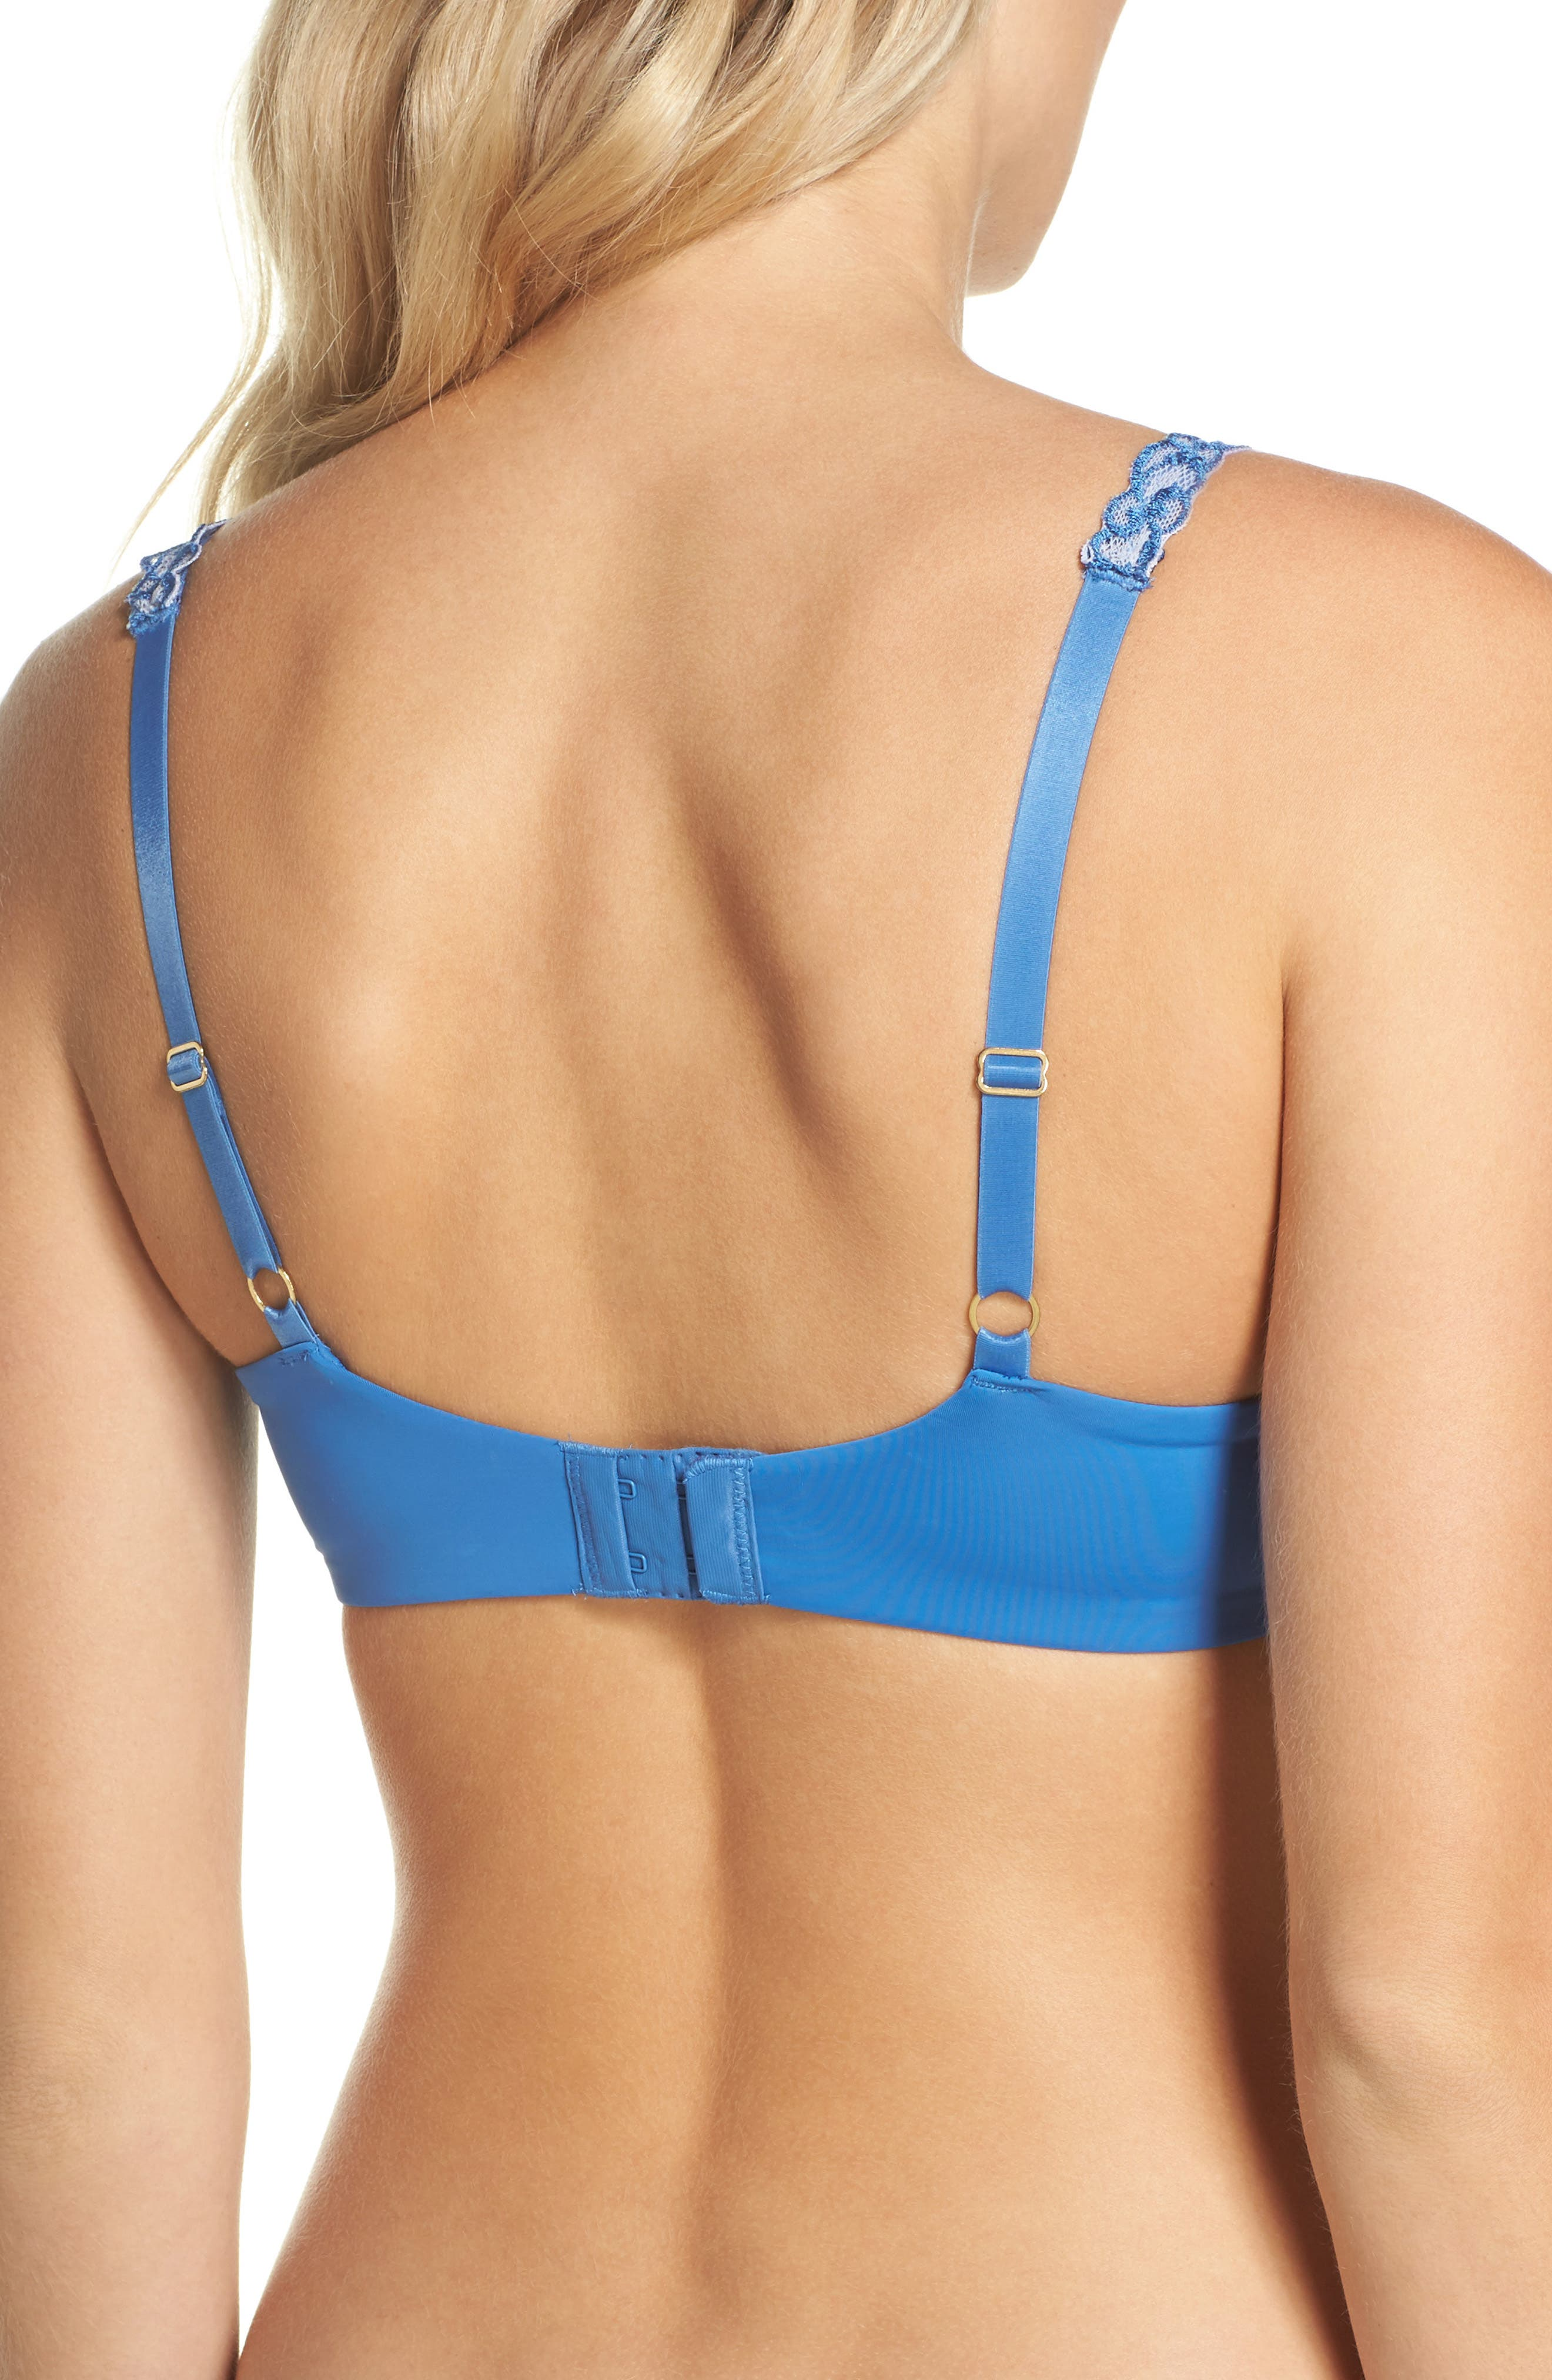 'Pure Luxe' Underwire T-Shirt Bra,                             Alternate thumbnail 2, color,                             Berry Blue/ Ice Blue